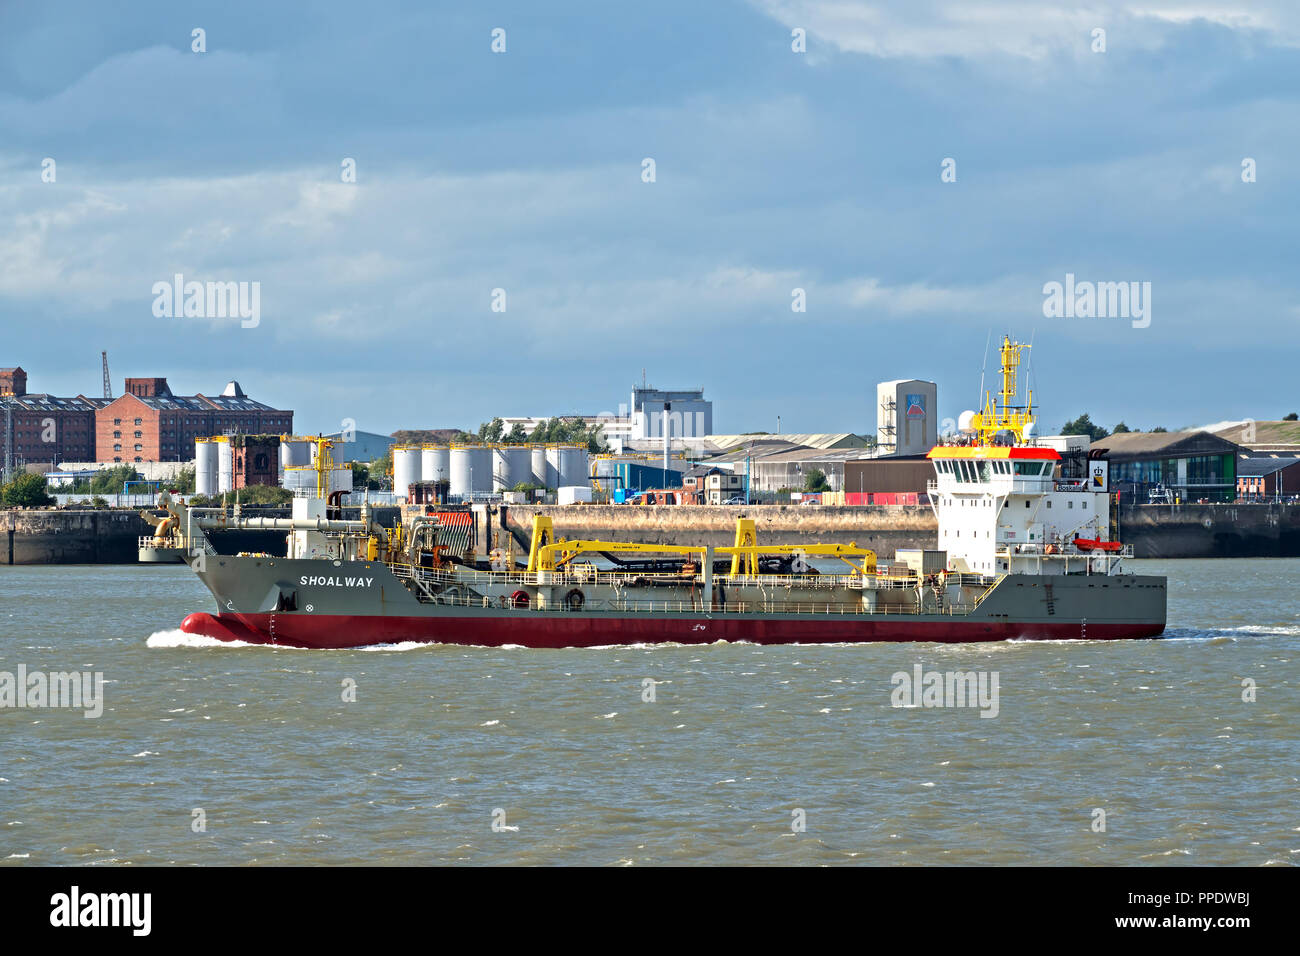 Shoalway a trailing suction hopper dredger on the River Mersey Liverpool UK. - Stock Image